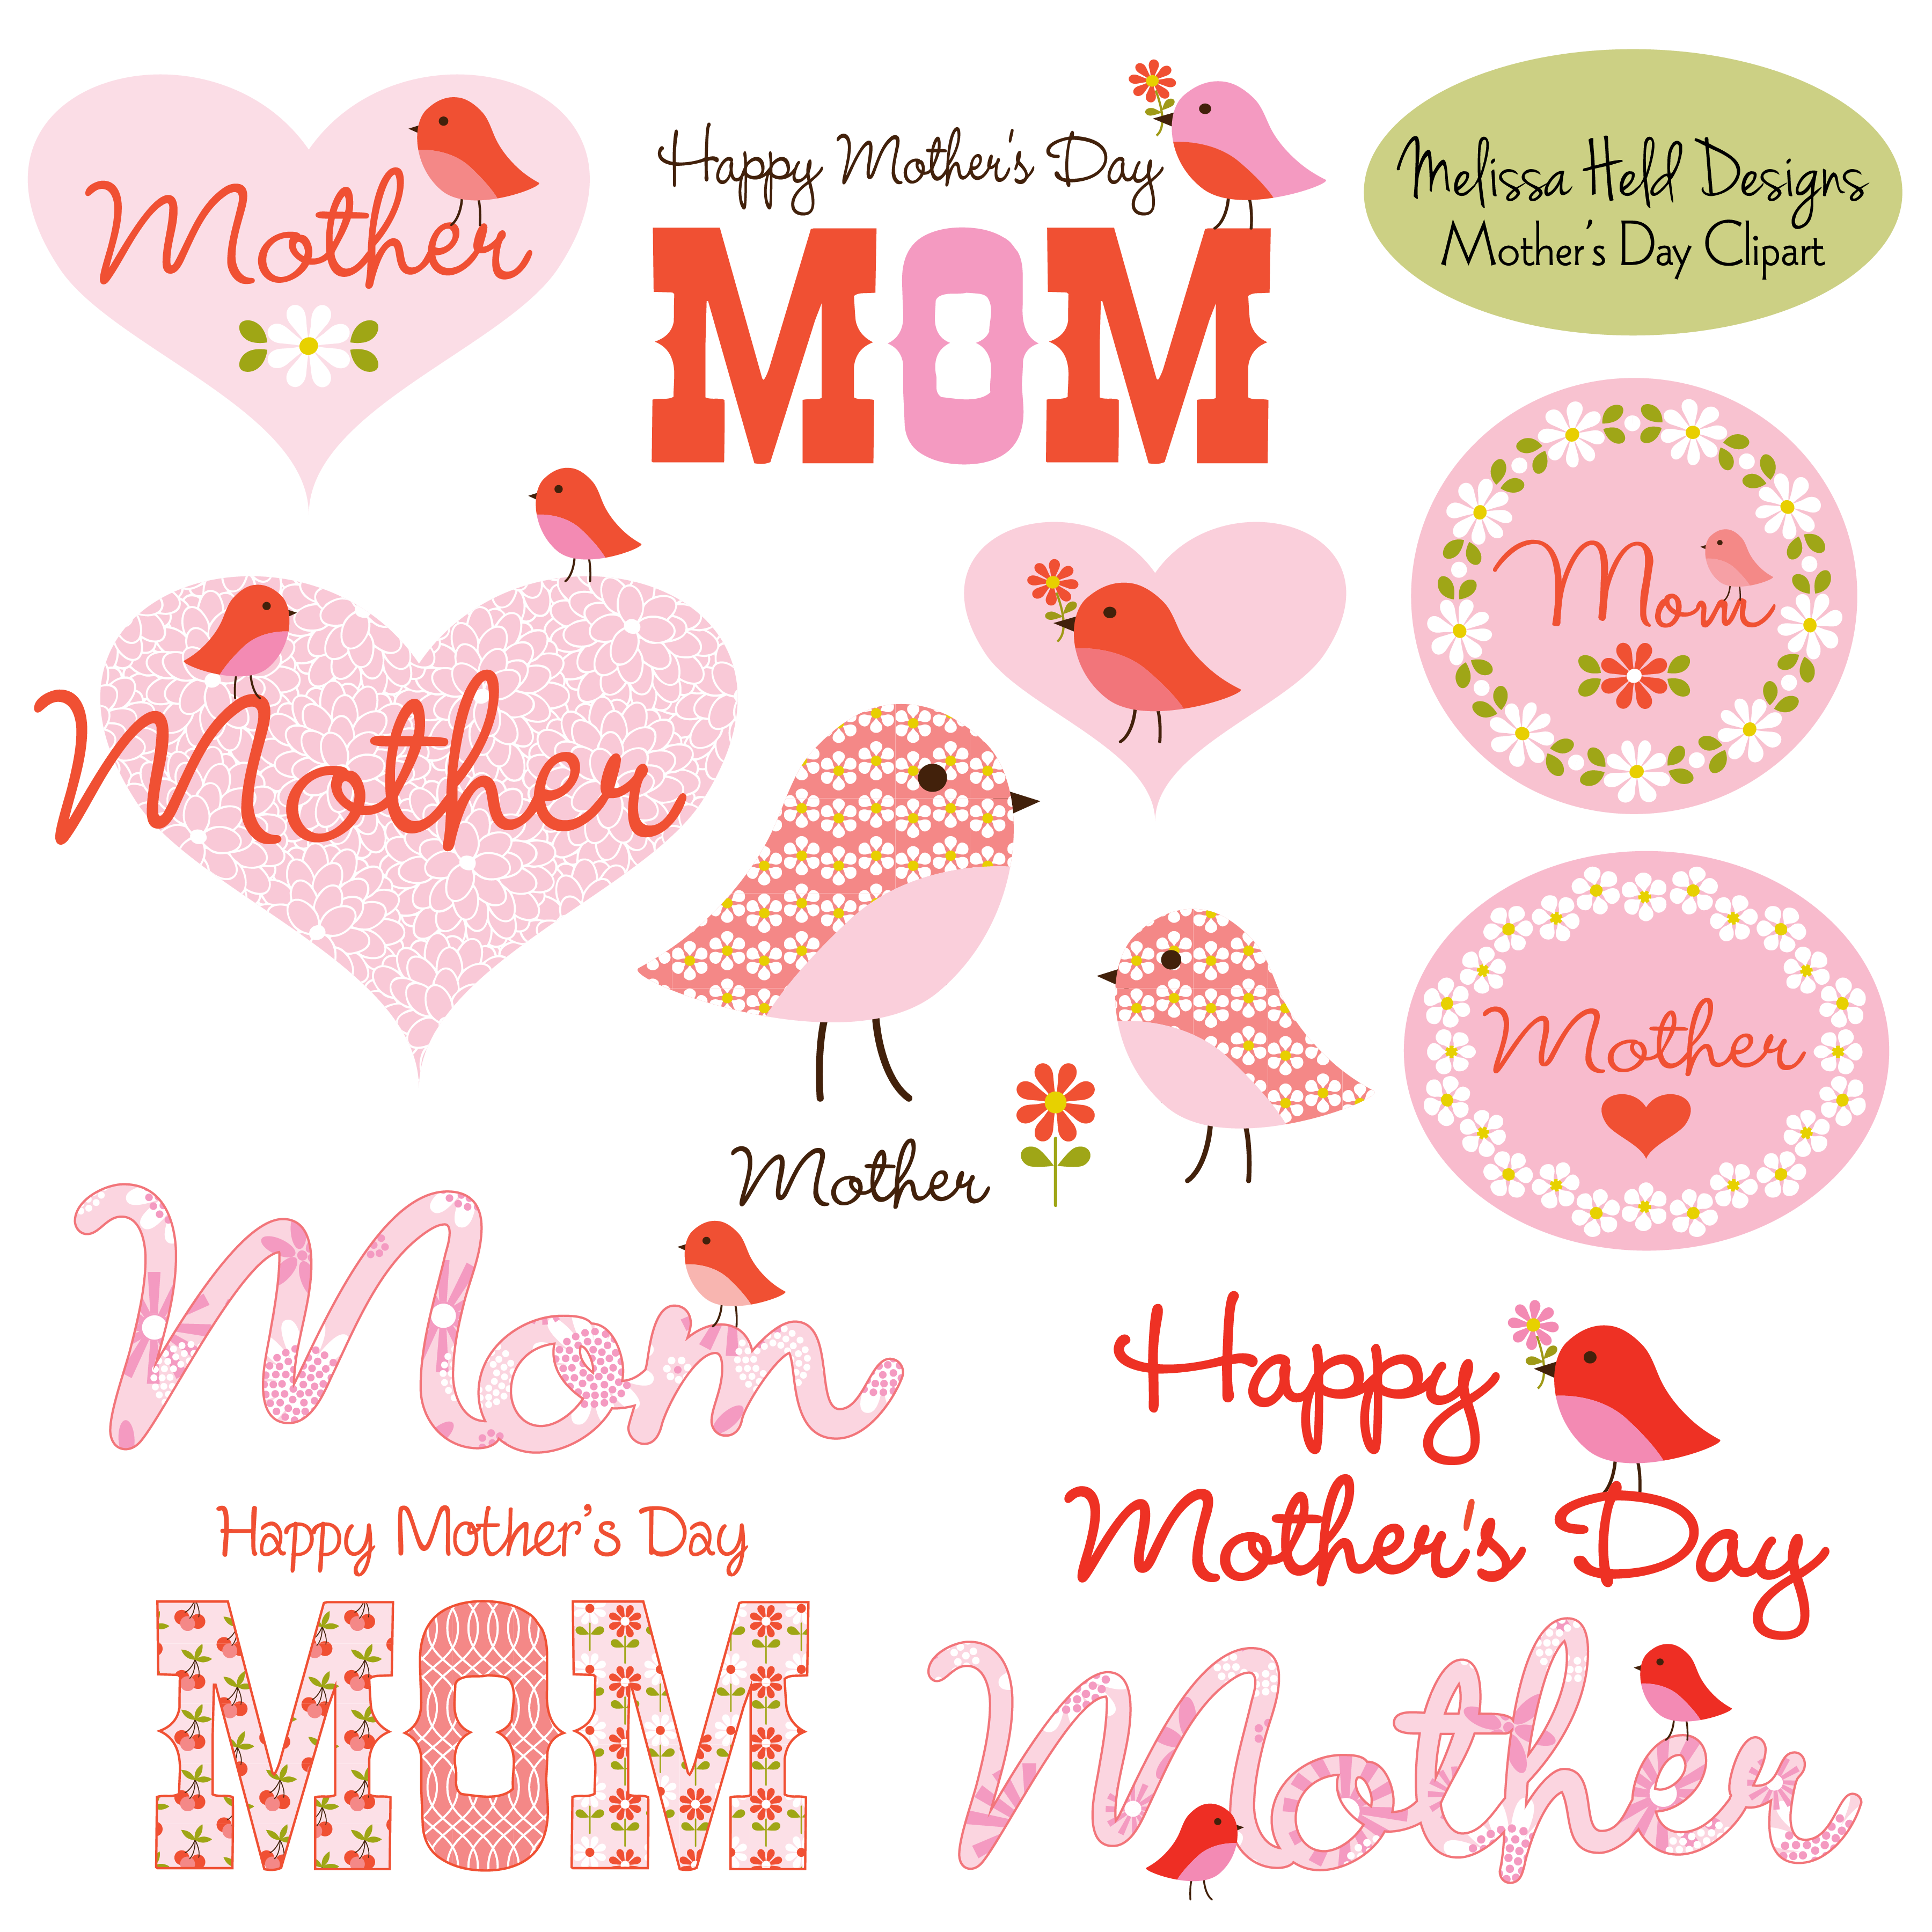 Mother S Day Clipart With Cute Birds Mother S Day Greeting Cards Happy Mother Day Quotes Clip Art